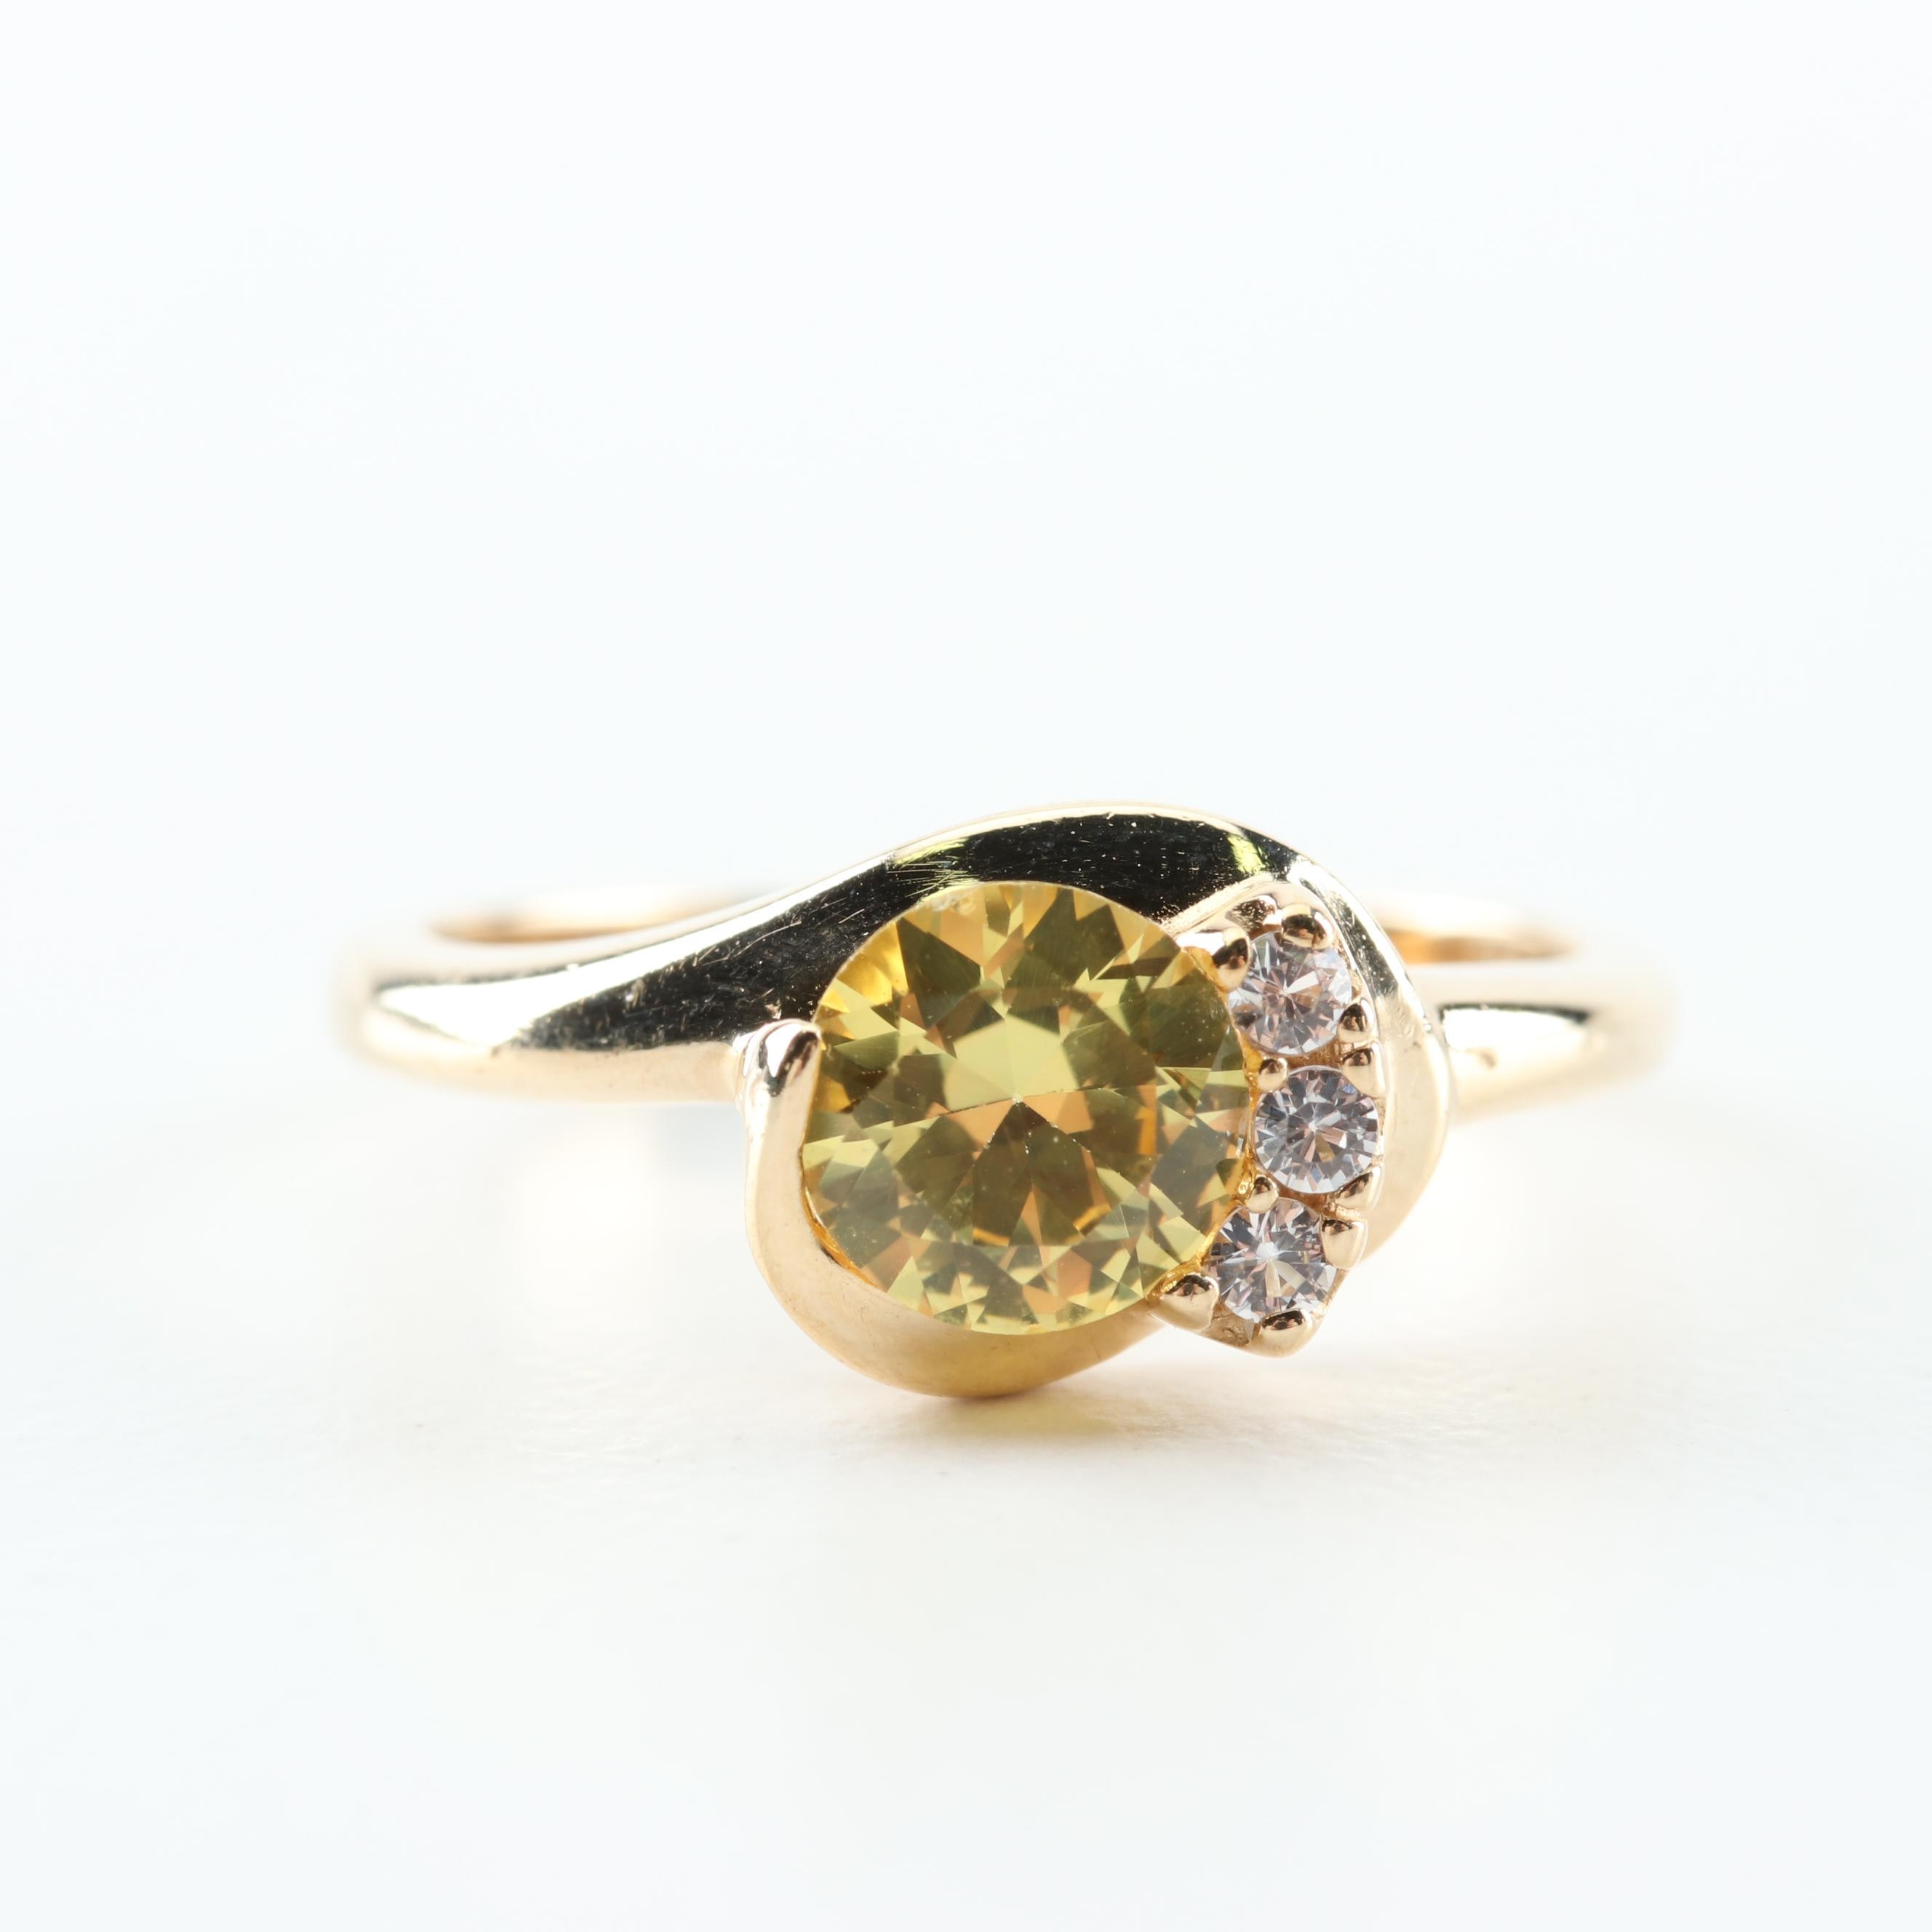 10K Yellow Gold, Synthetic Sapphire, and Cubic Zirconia Ring